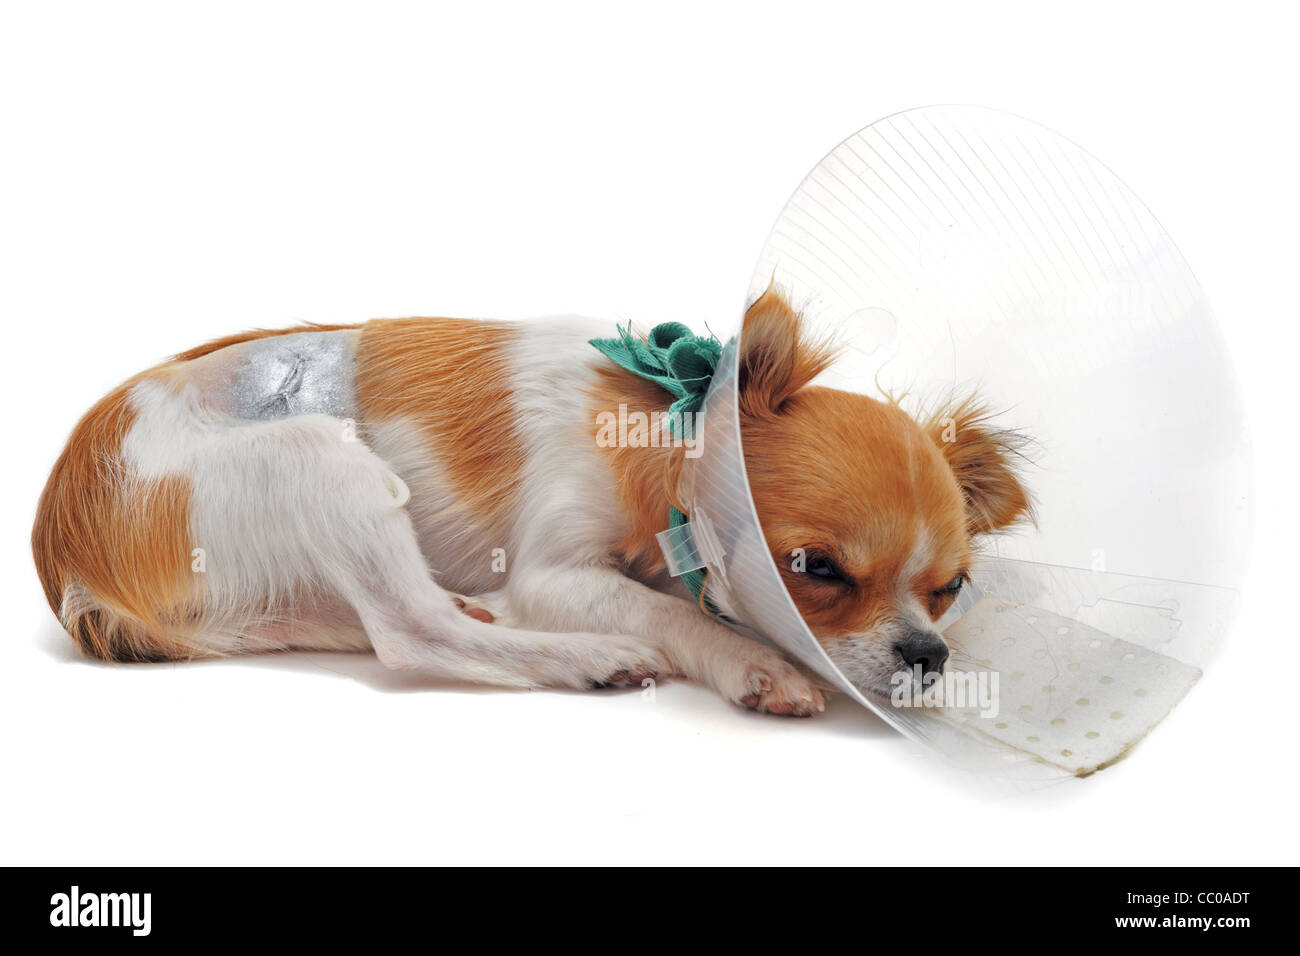 a chihuahua wearing a protective veterinary collar after a surgical operation - Stock Image